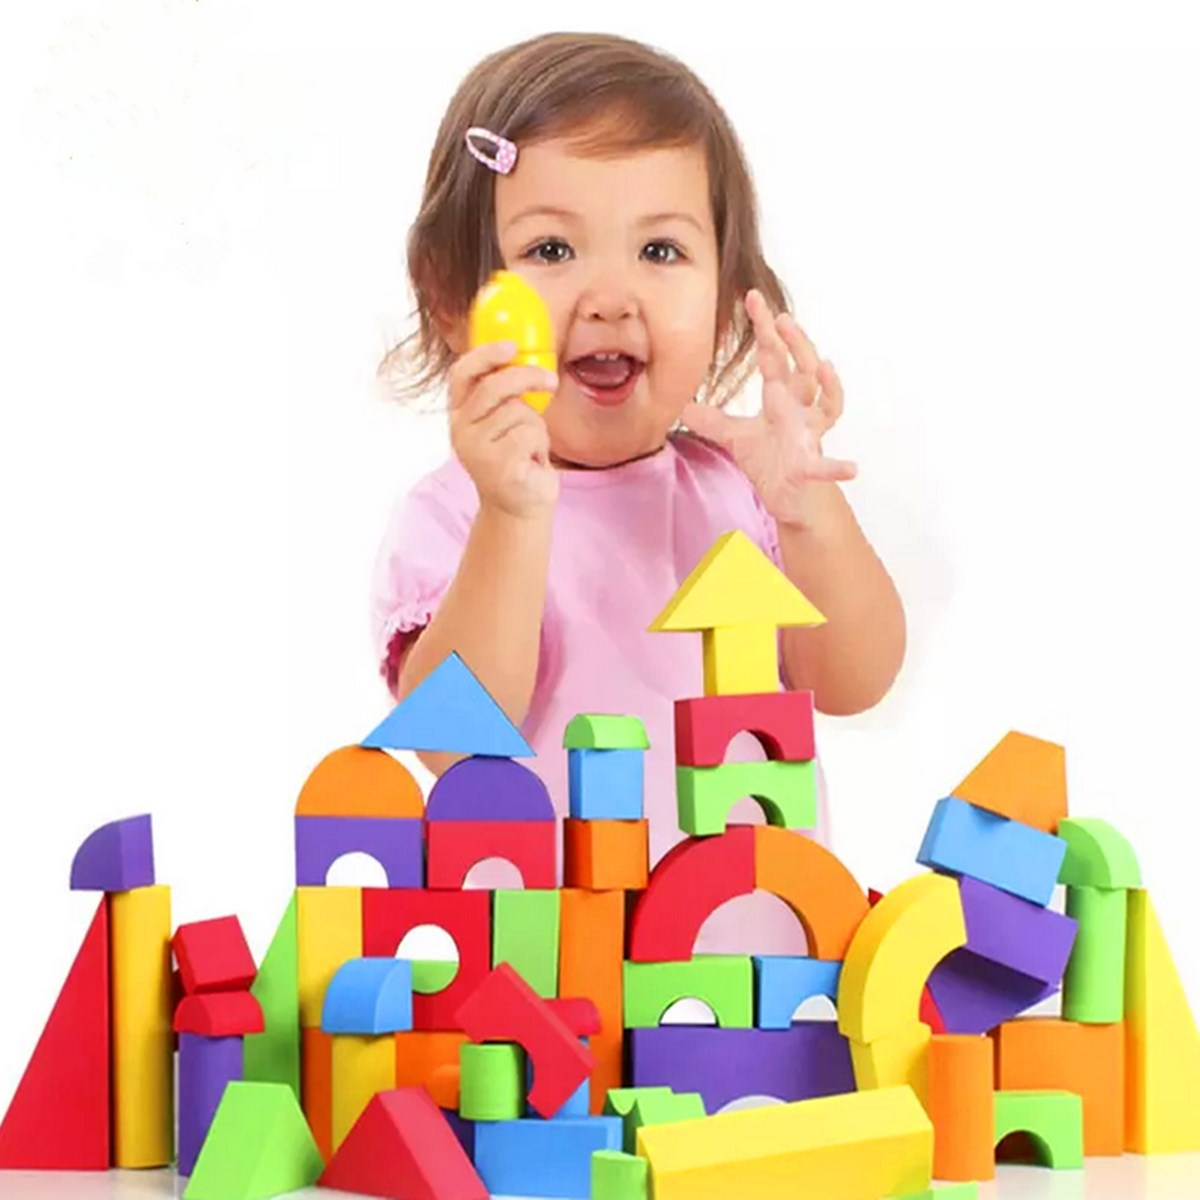 Best Toy Building Blocks For Toddlers And Kids : New pcs soft eva foam educational building block brick